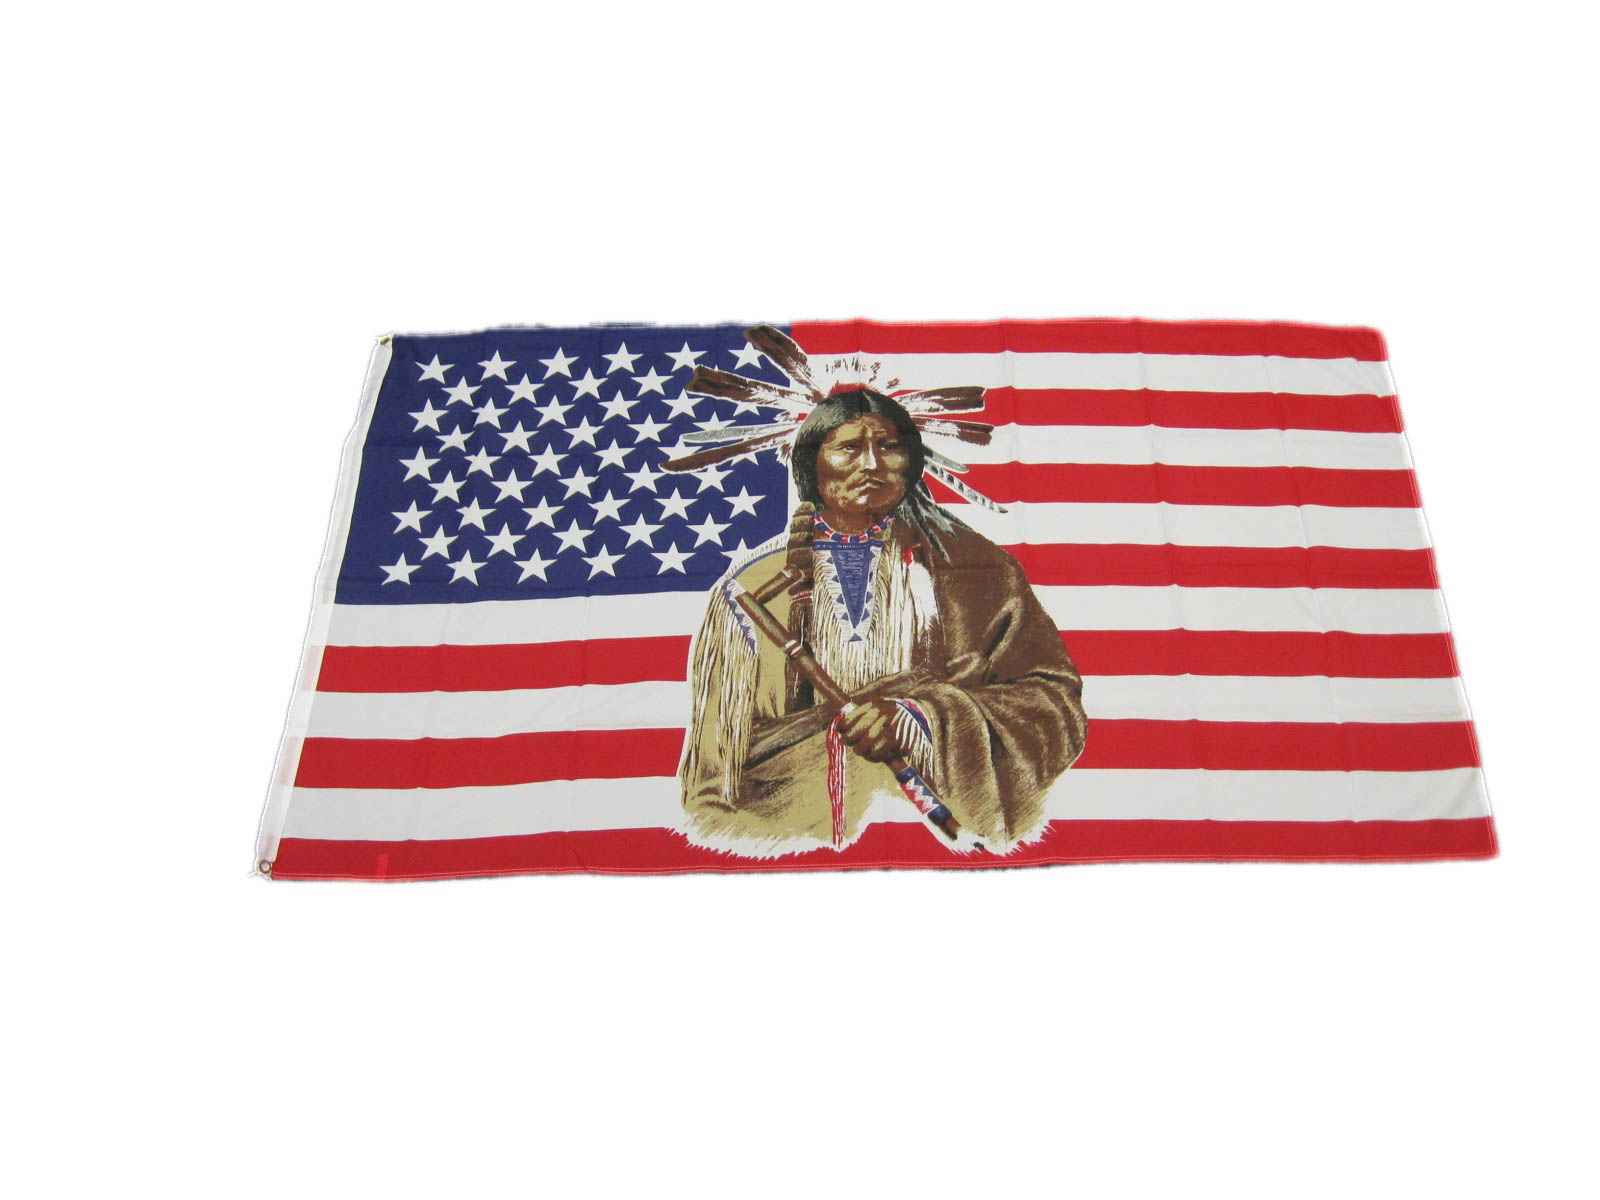 U.S. Flag with Indian